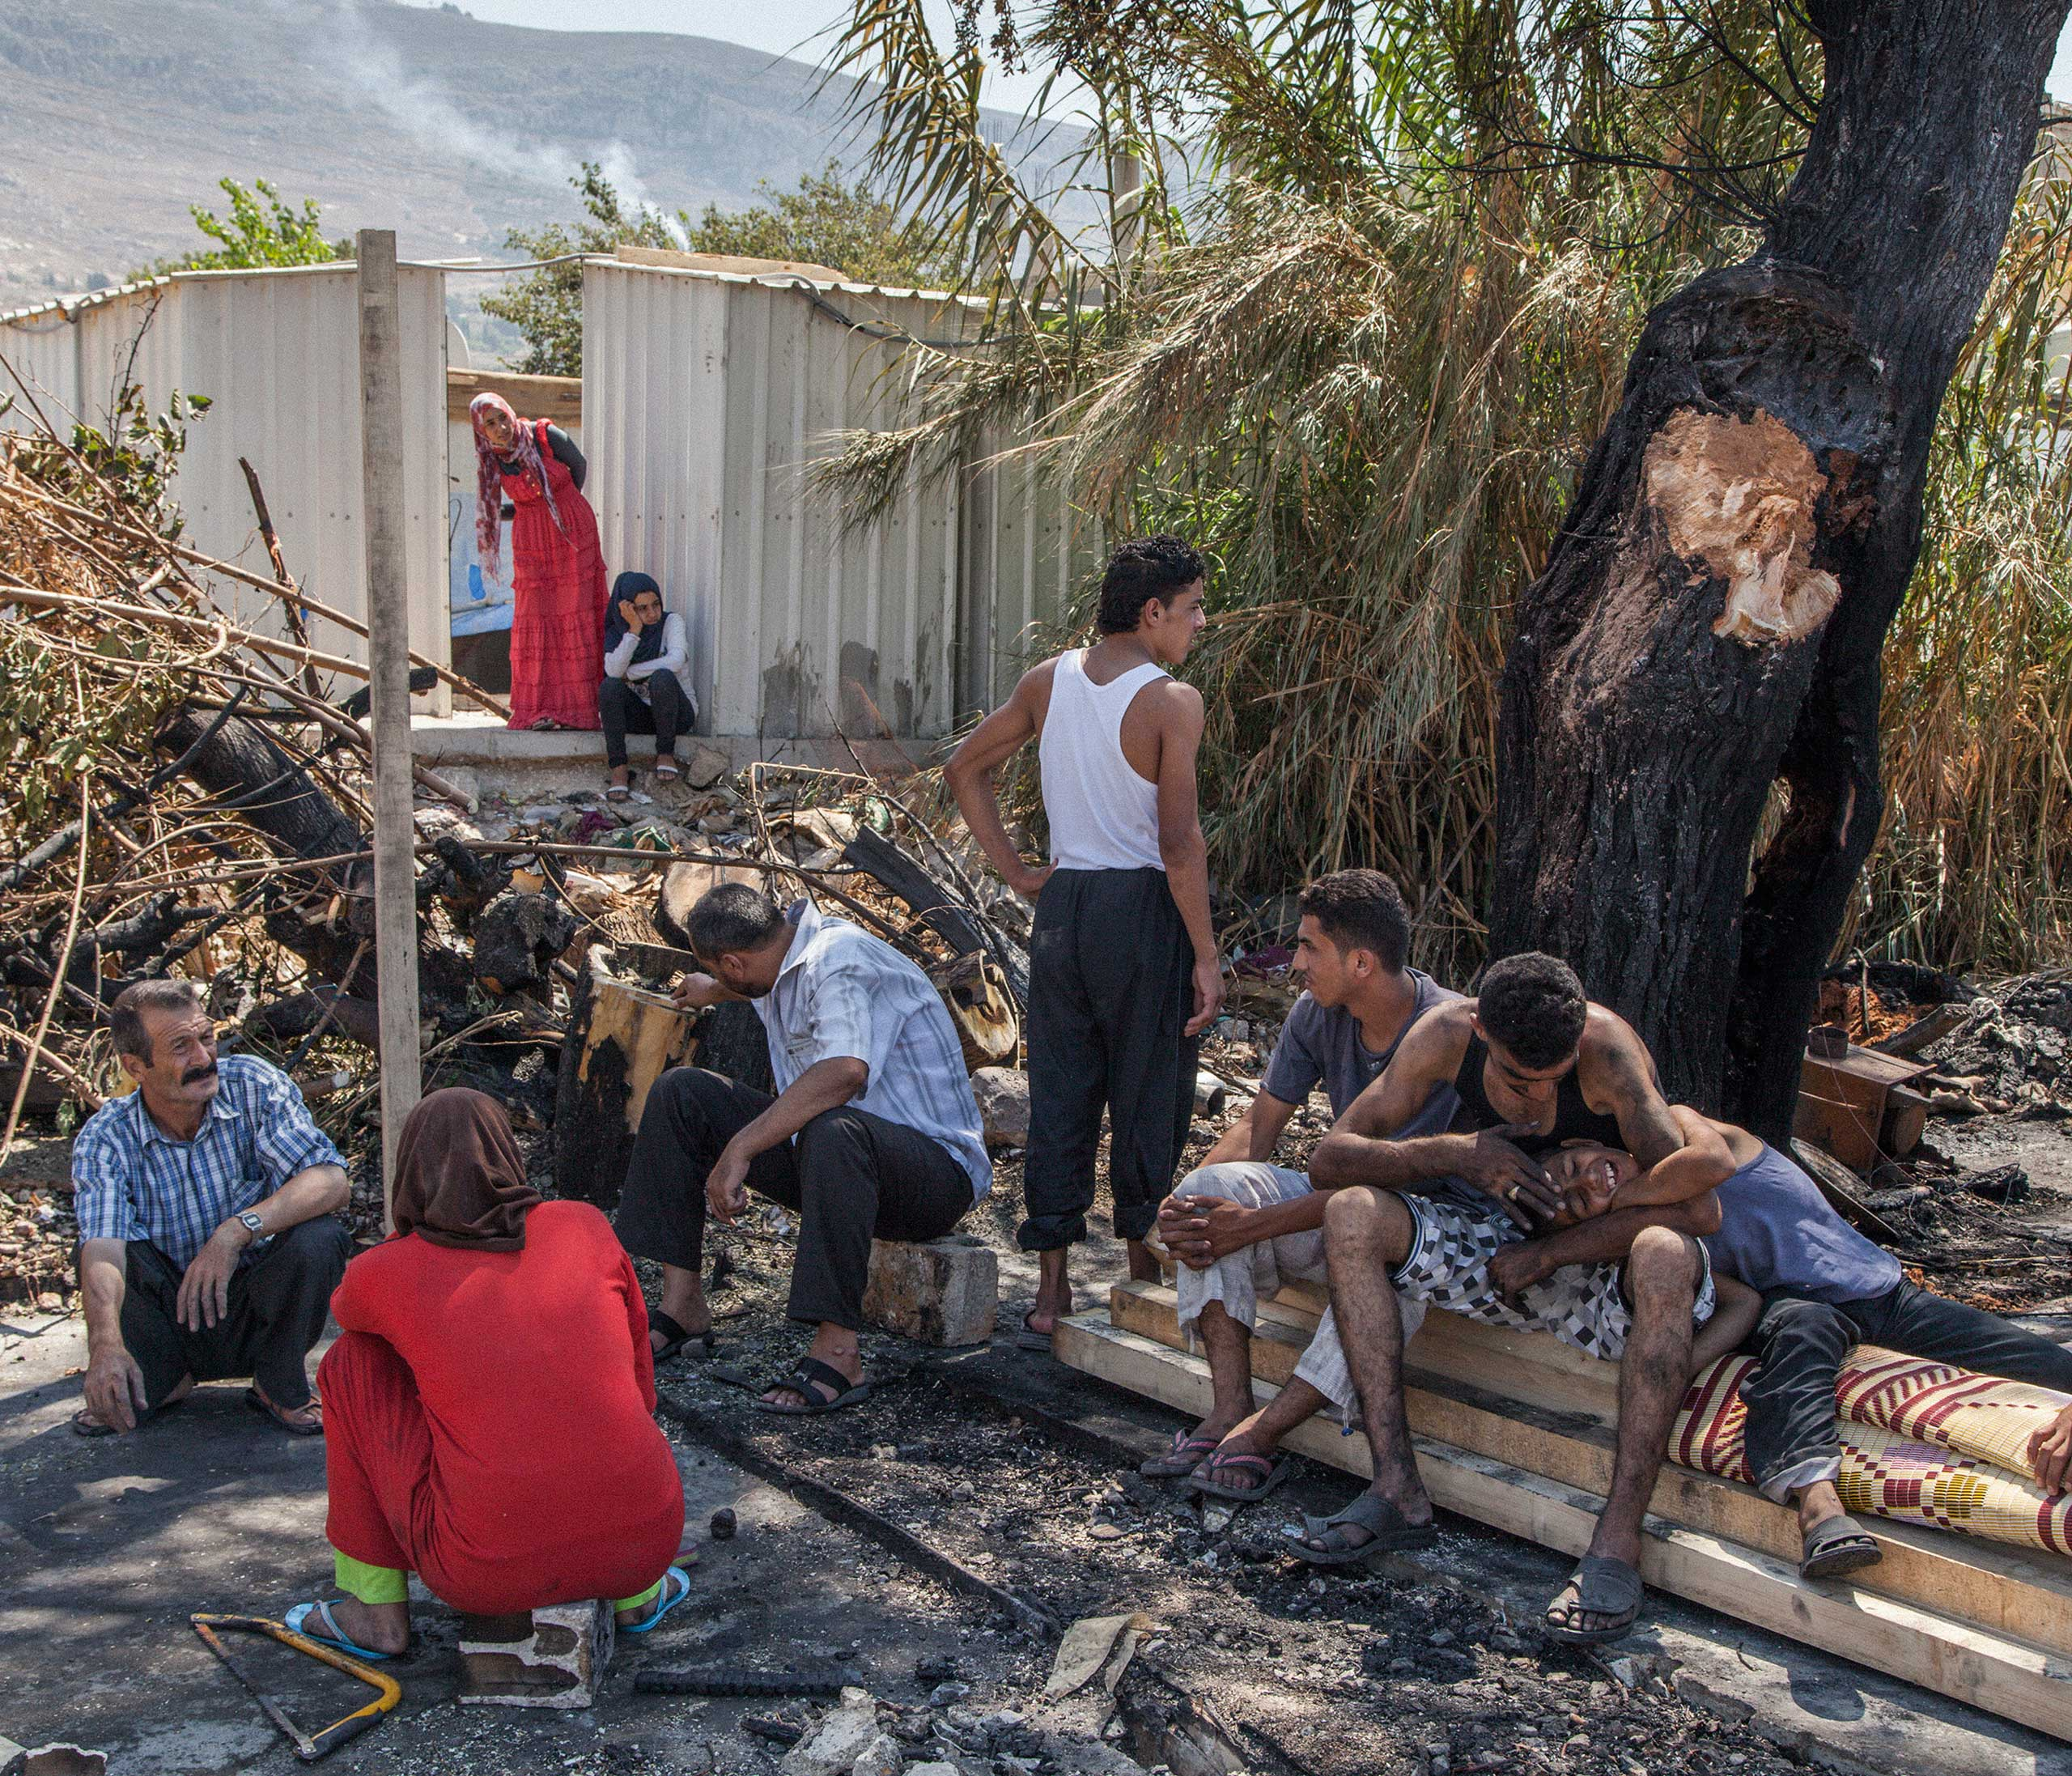 The Al-Rashid family, from Hama in Syria, sit amongst the ashes of their shelter. A fire the previous day destroyed all of the 25 tents that stood in the Al-Rashid camp on the outskirts of Minieh in Northern Lebanon, a town on the border with Syria. Aug. 2014.